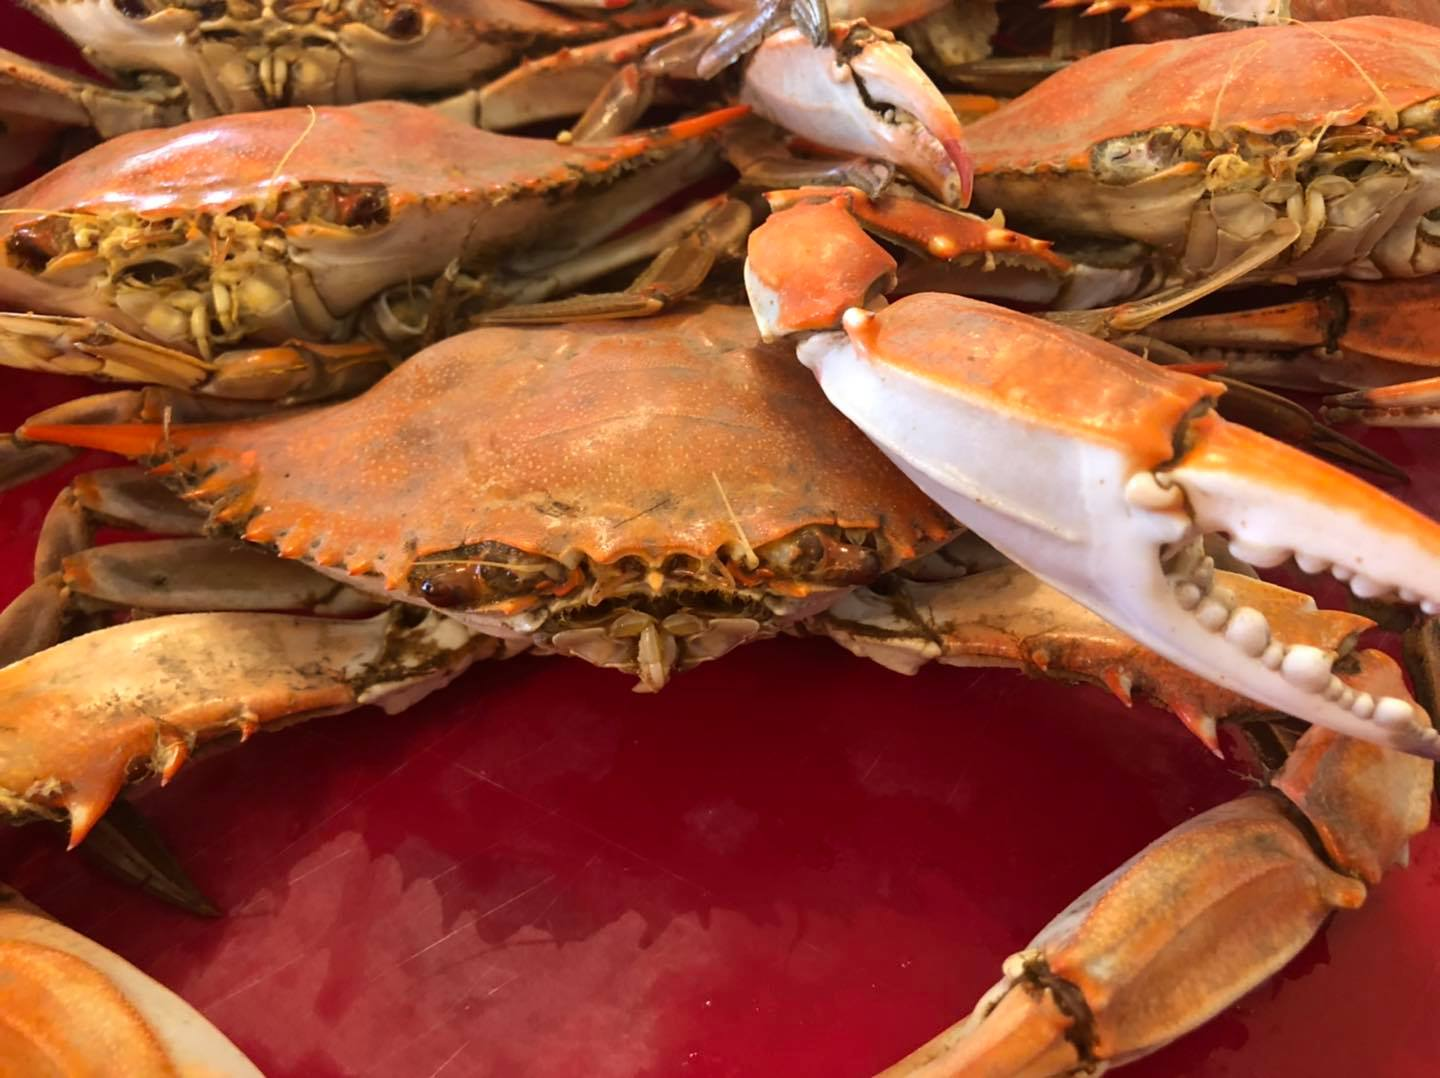 boiled crabs on a plate